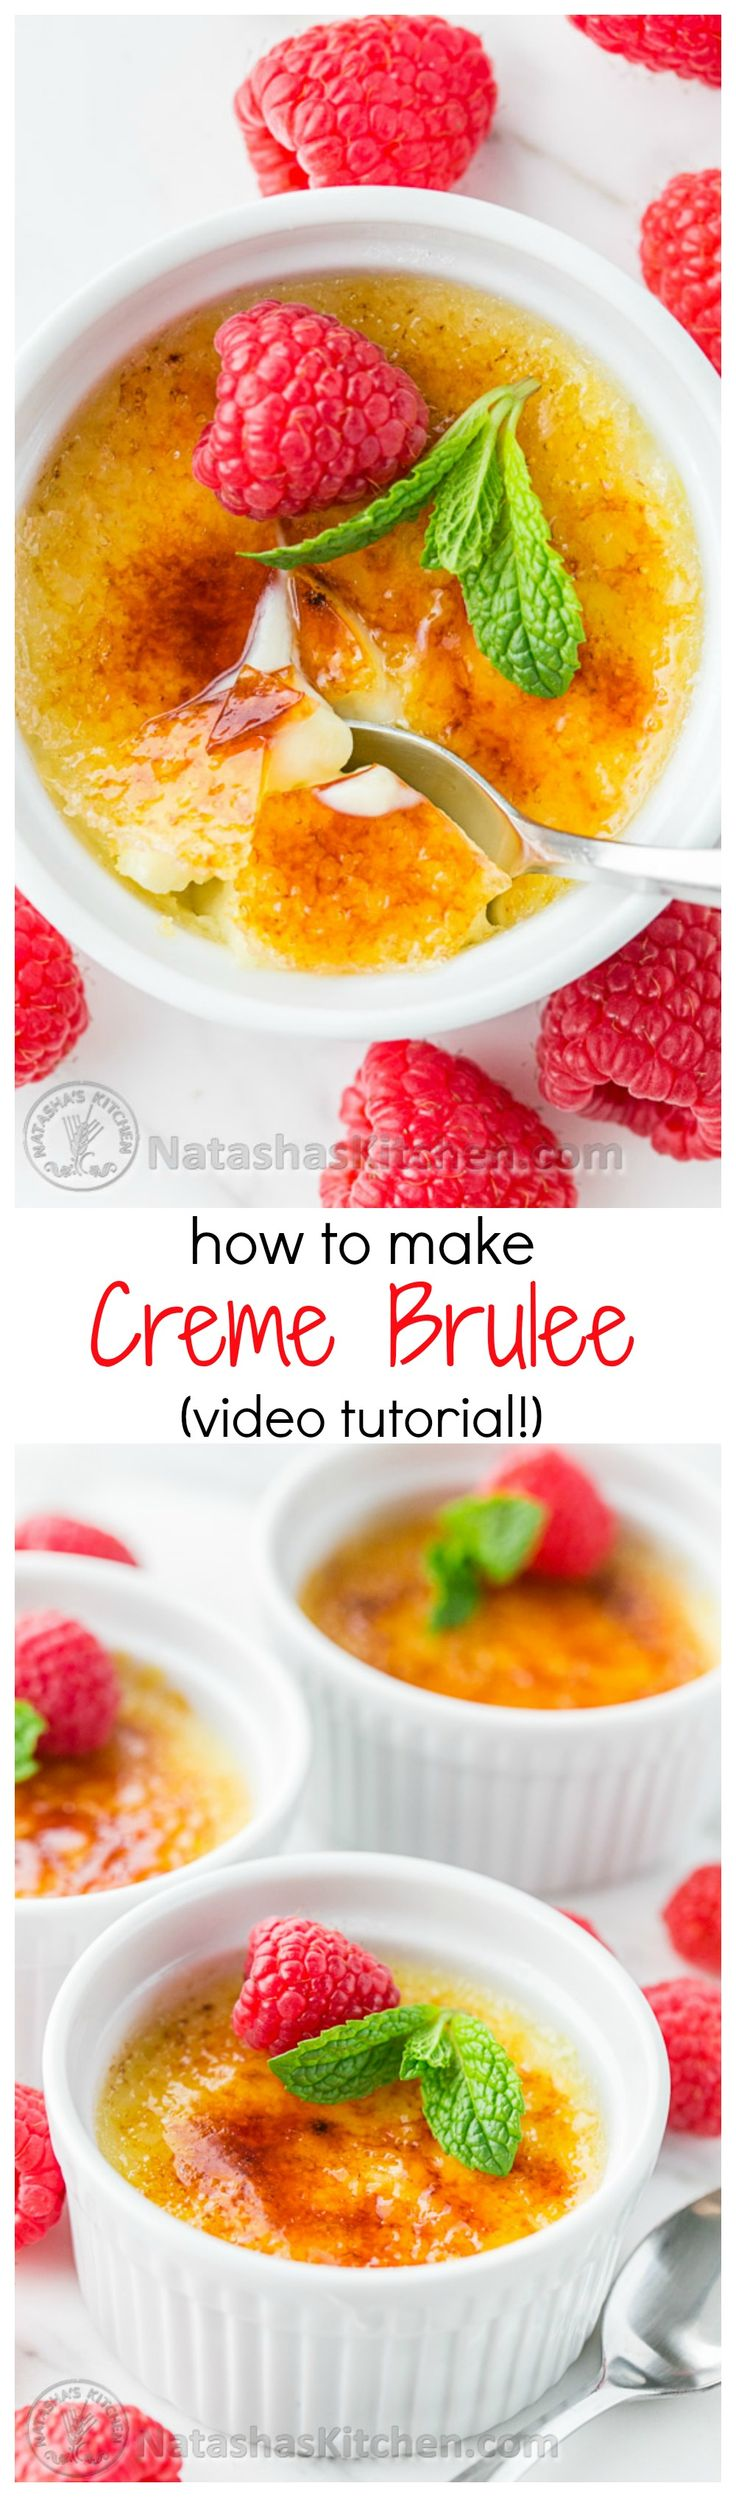 Quick and Easy Creme Brulee Recipe with great Video Tutorial from @natashaskitchen